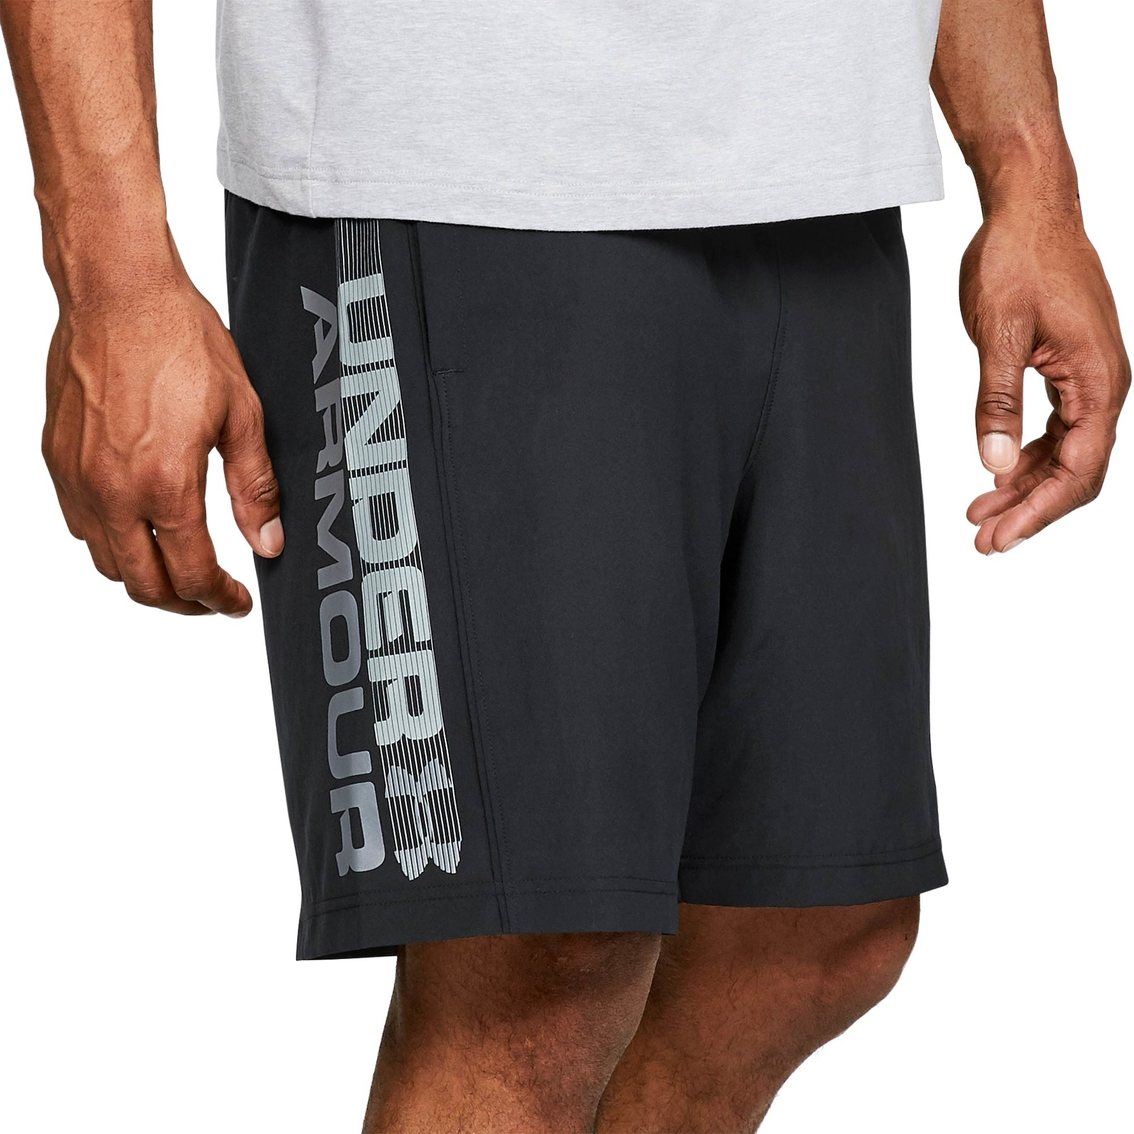 740bff3db2f1 Under Armour Men s Ua Woven Graphic Wordmark Shorts